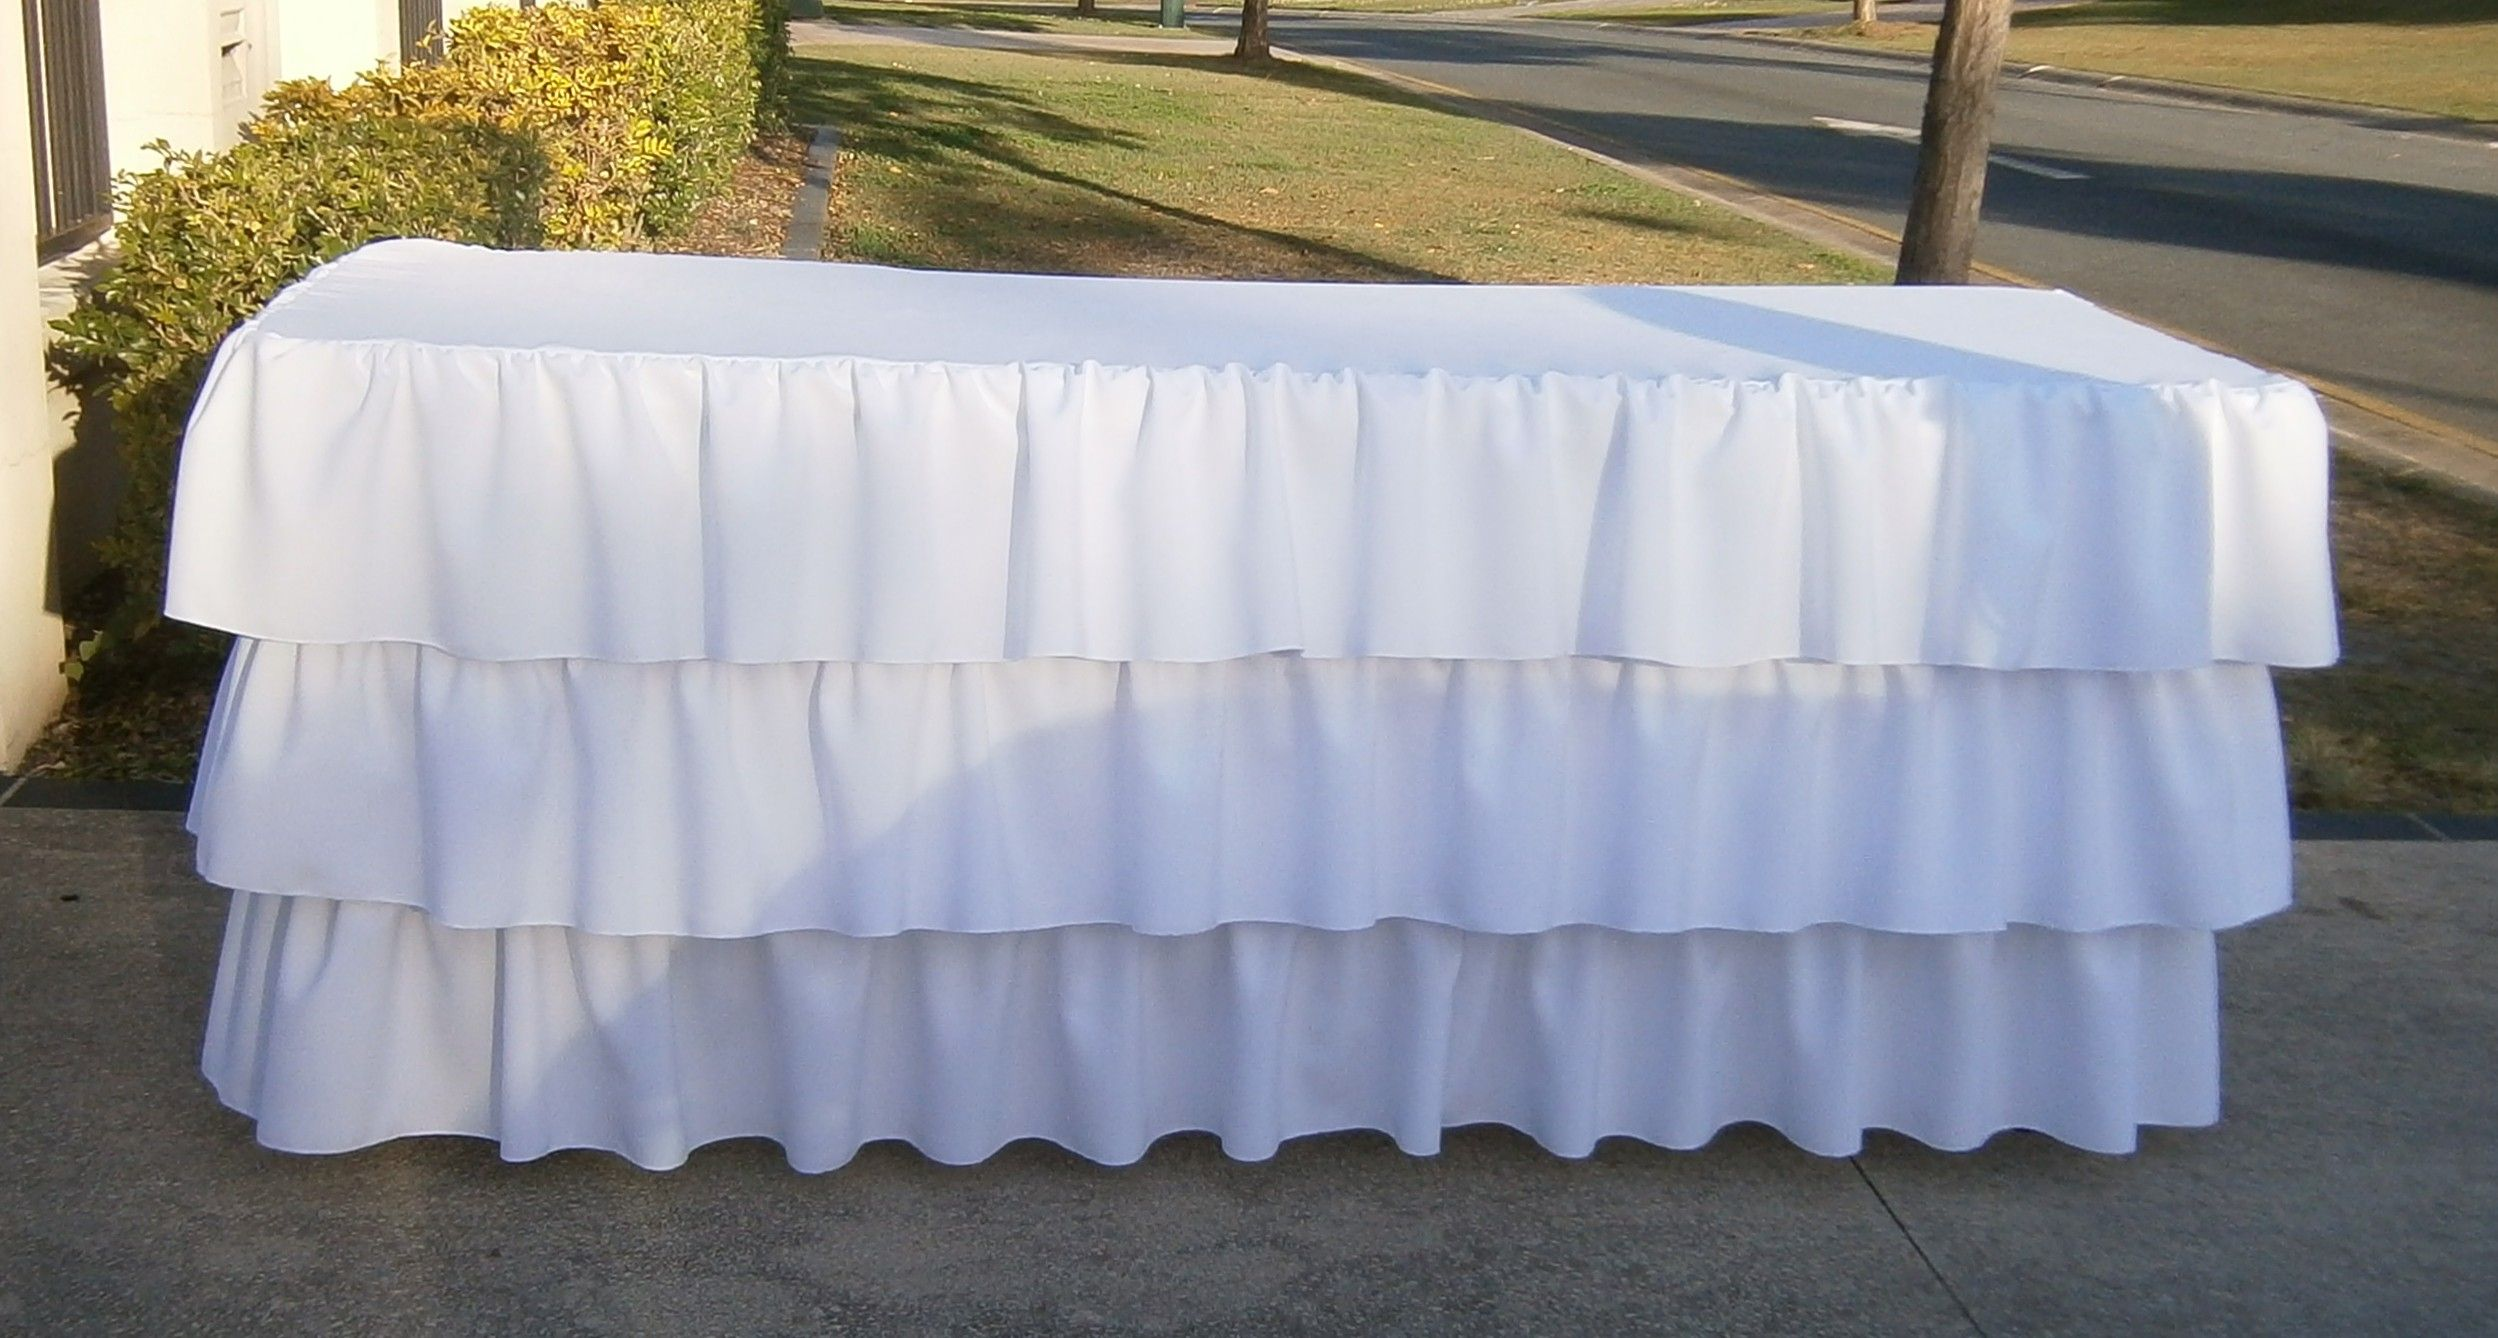 3 Tiered Ruffle Tablecloth - White from www ... Ruffled Tablecloth